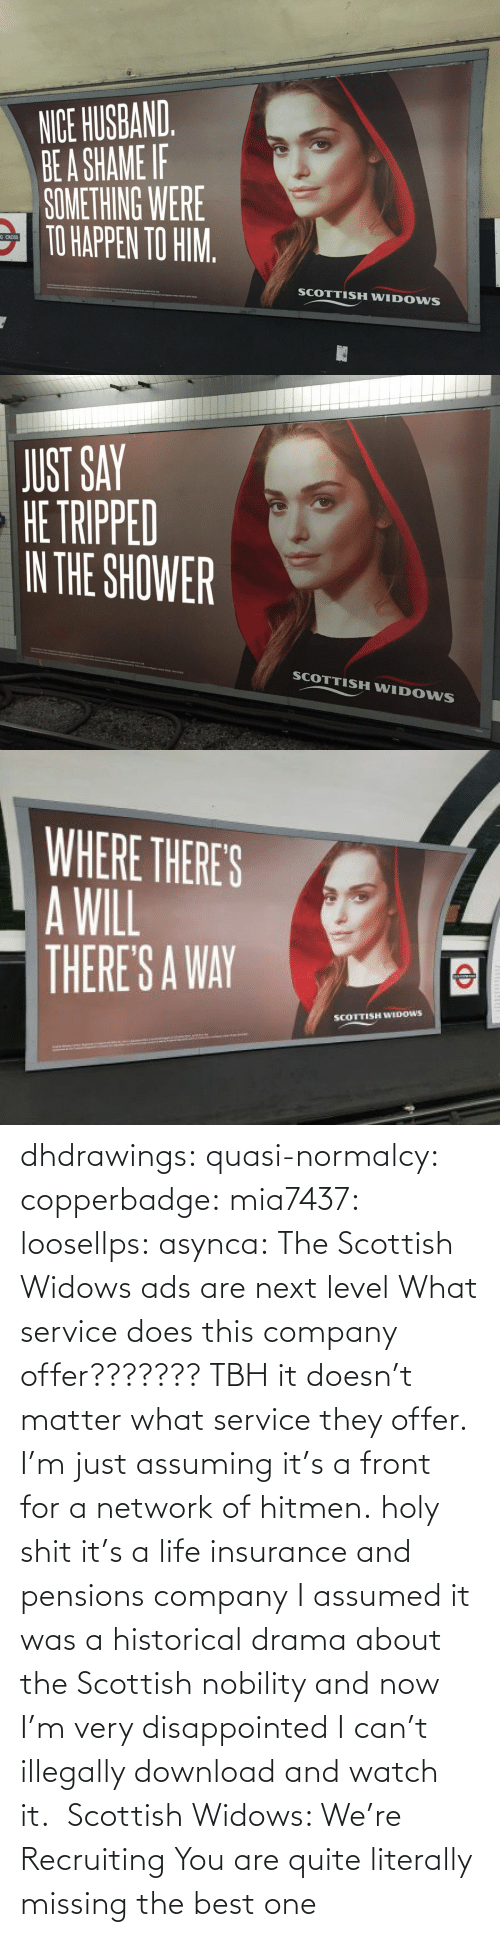 com: dhdrawings:  quasi-normalcy:  copperbadge:  mia7437:  loosellps:  asynca: The Scottish Widows ads are next level What service does this company offer??????? TBH it doesn't matter what service they offer. I'm just assuming it's a front for a network of hitmen.  holy shit it's a life insurance and pensions company  I assumed it was a historical drama about the Scottish nobility and now I'm very disappointed I can't illegally download and watch it.     Scottish Widows: We're Recruiting    You are quite literally missing the best one